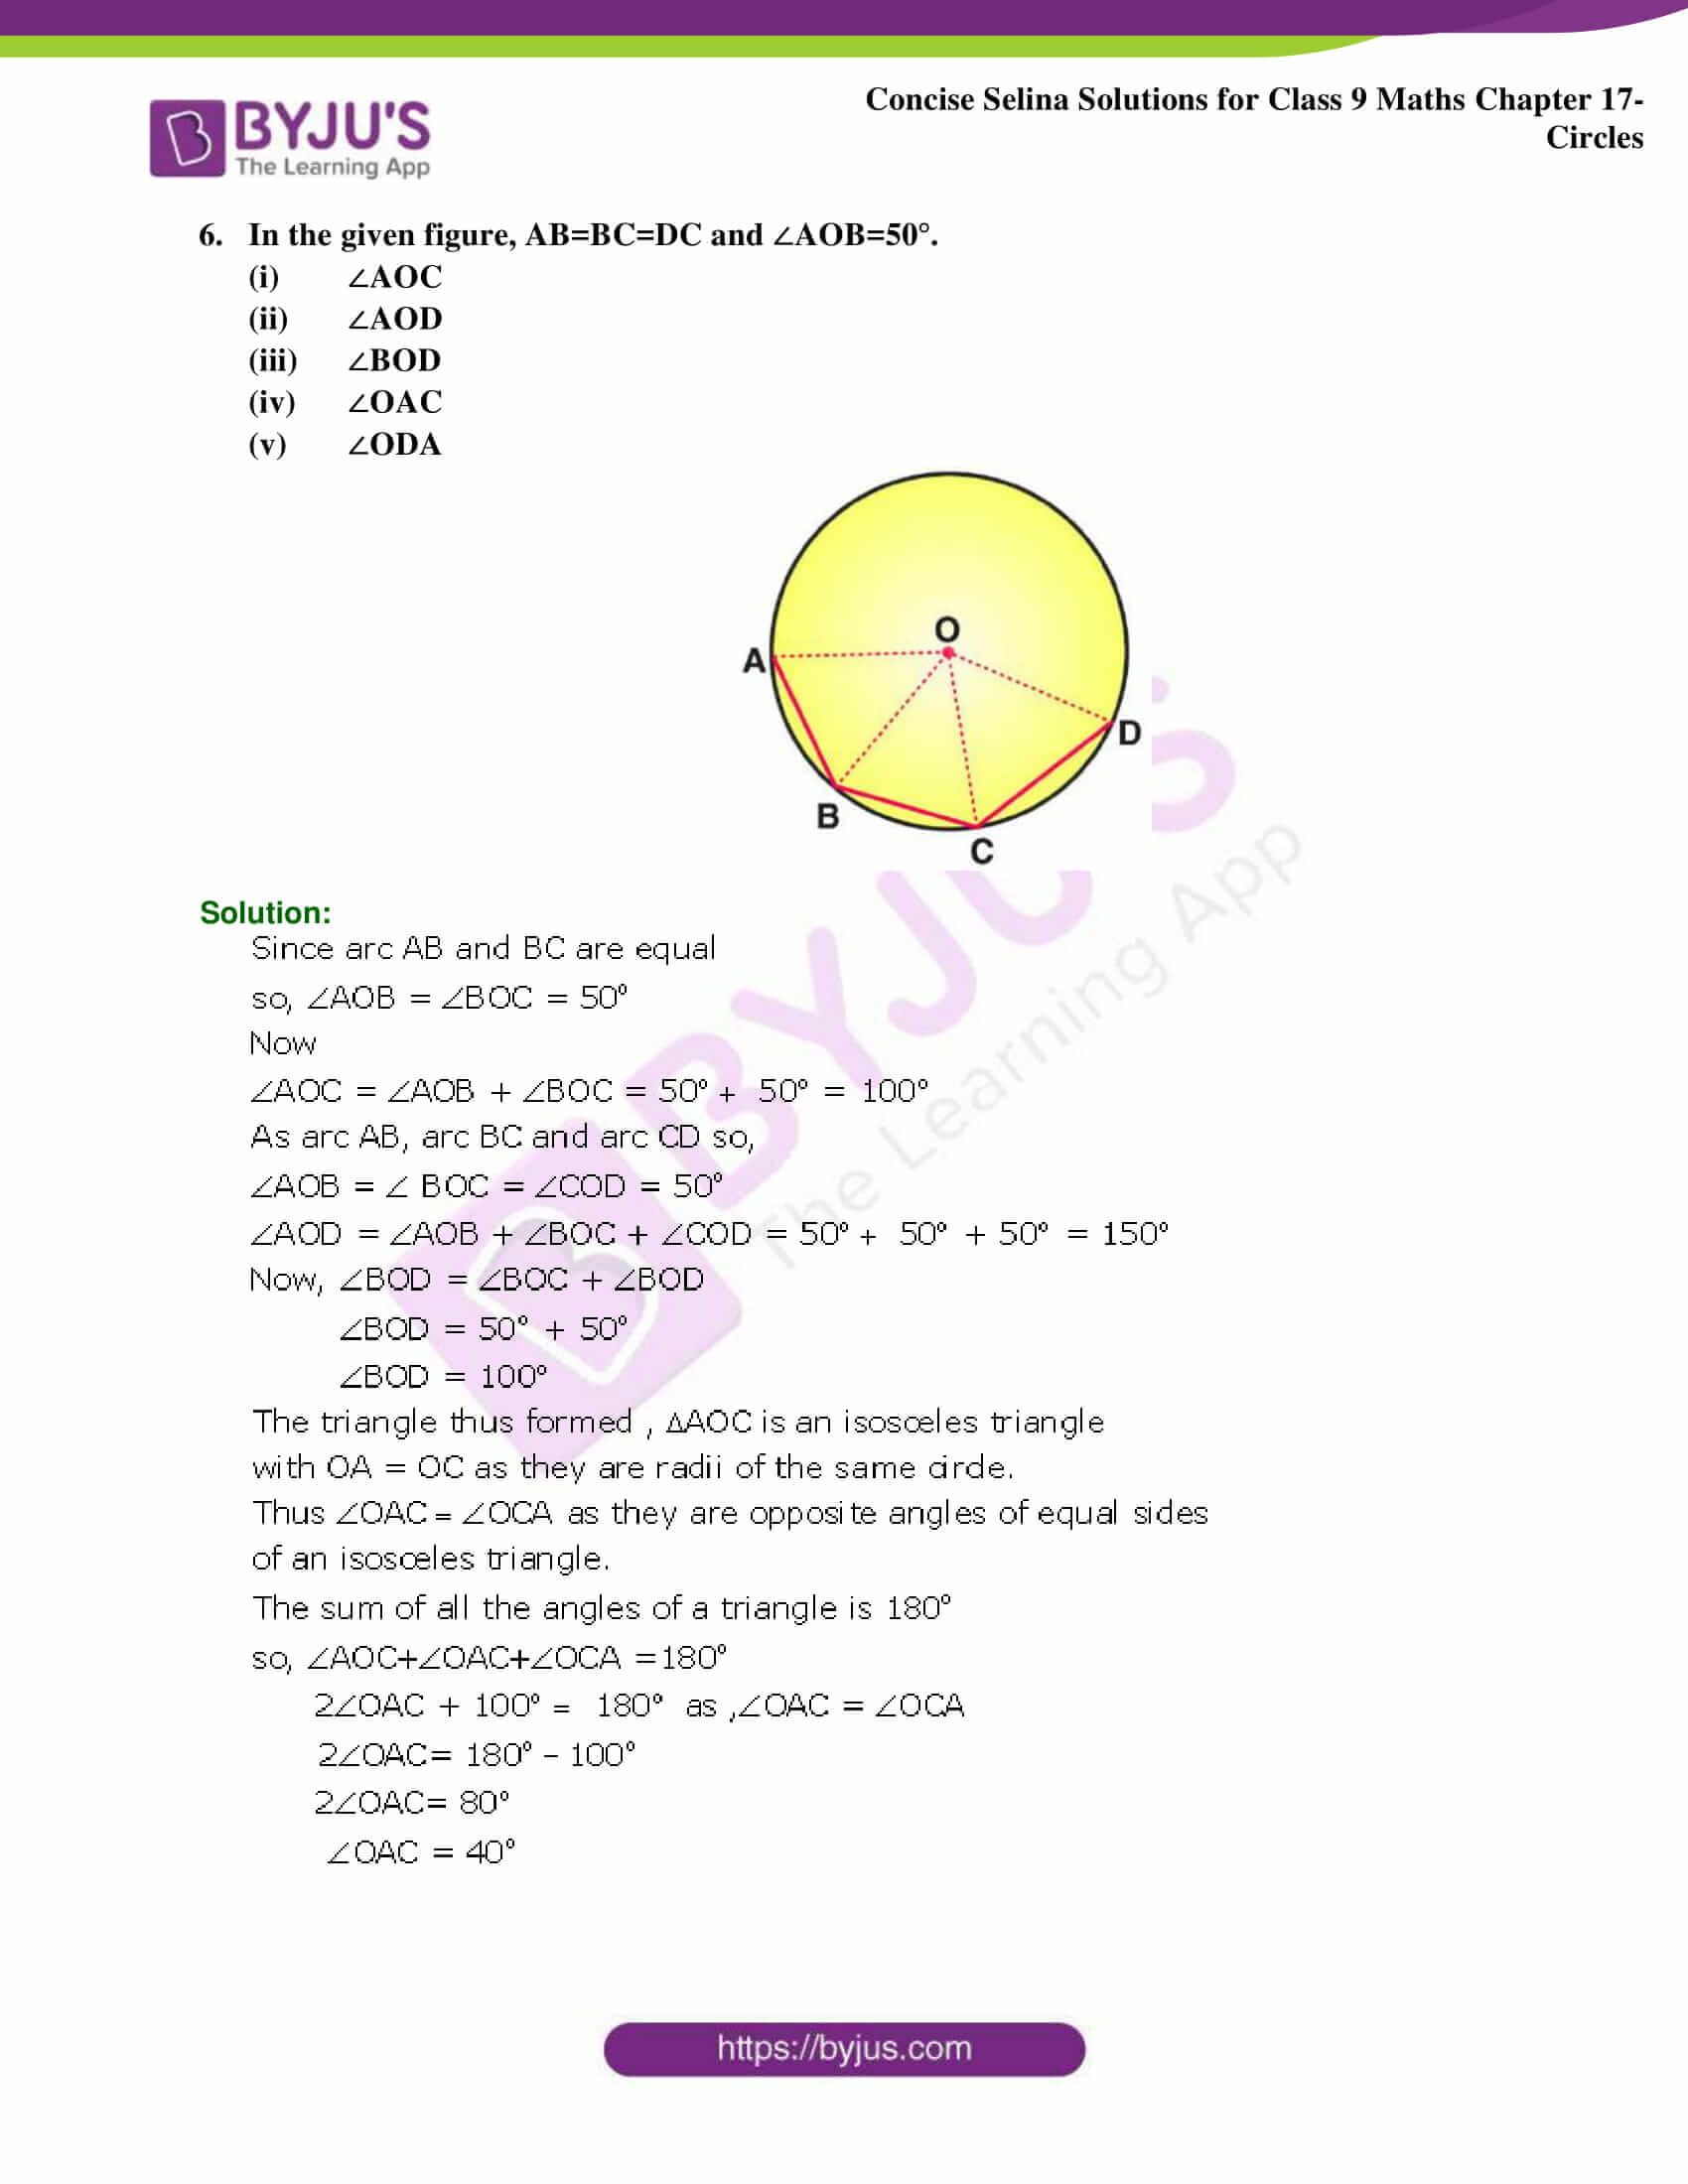 Concise Selina Solutions Class 9 Maths Chapter 17 Circles part 25